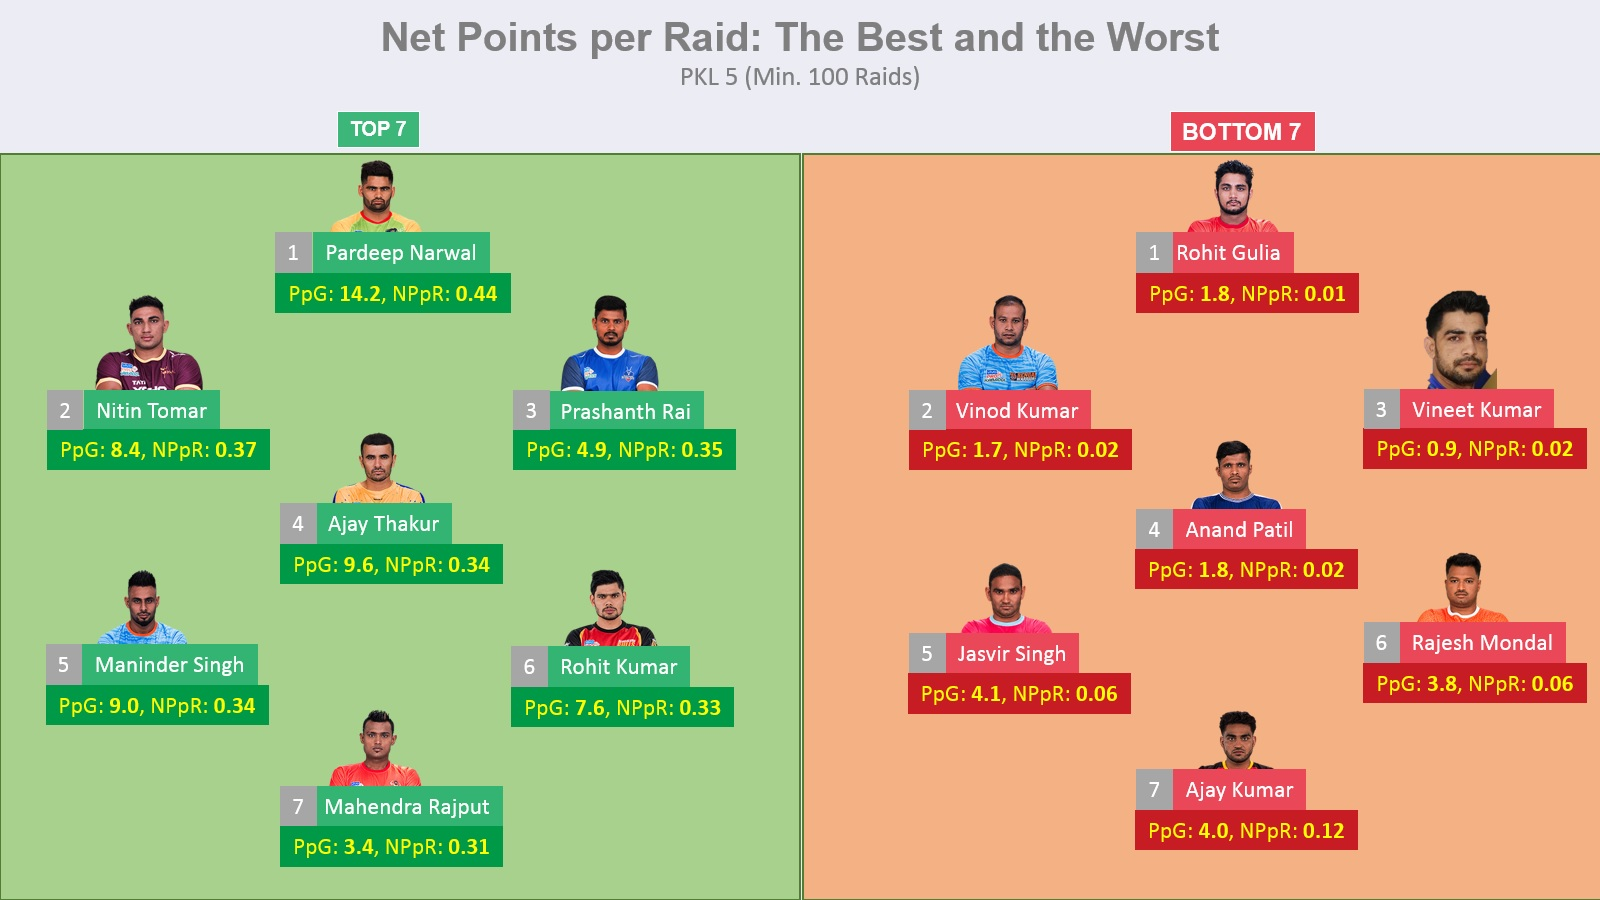 Net Points per Raid – An advanced Kabaddi Metric